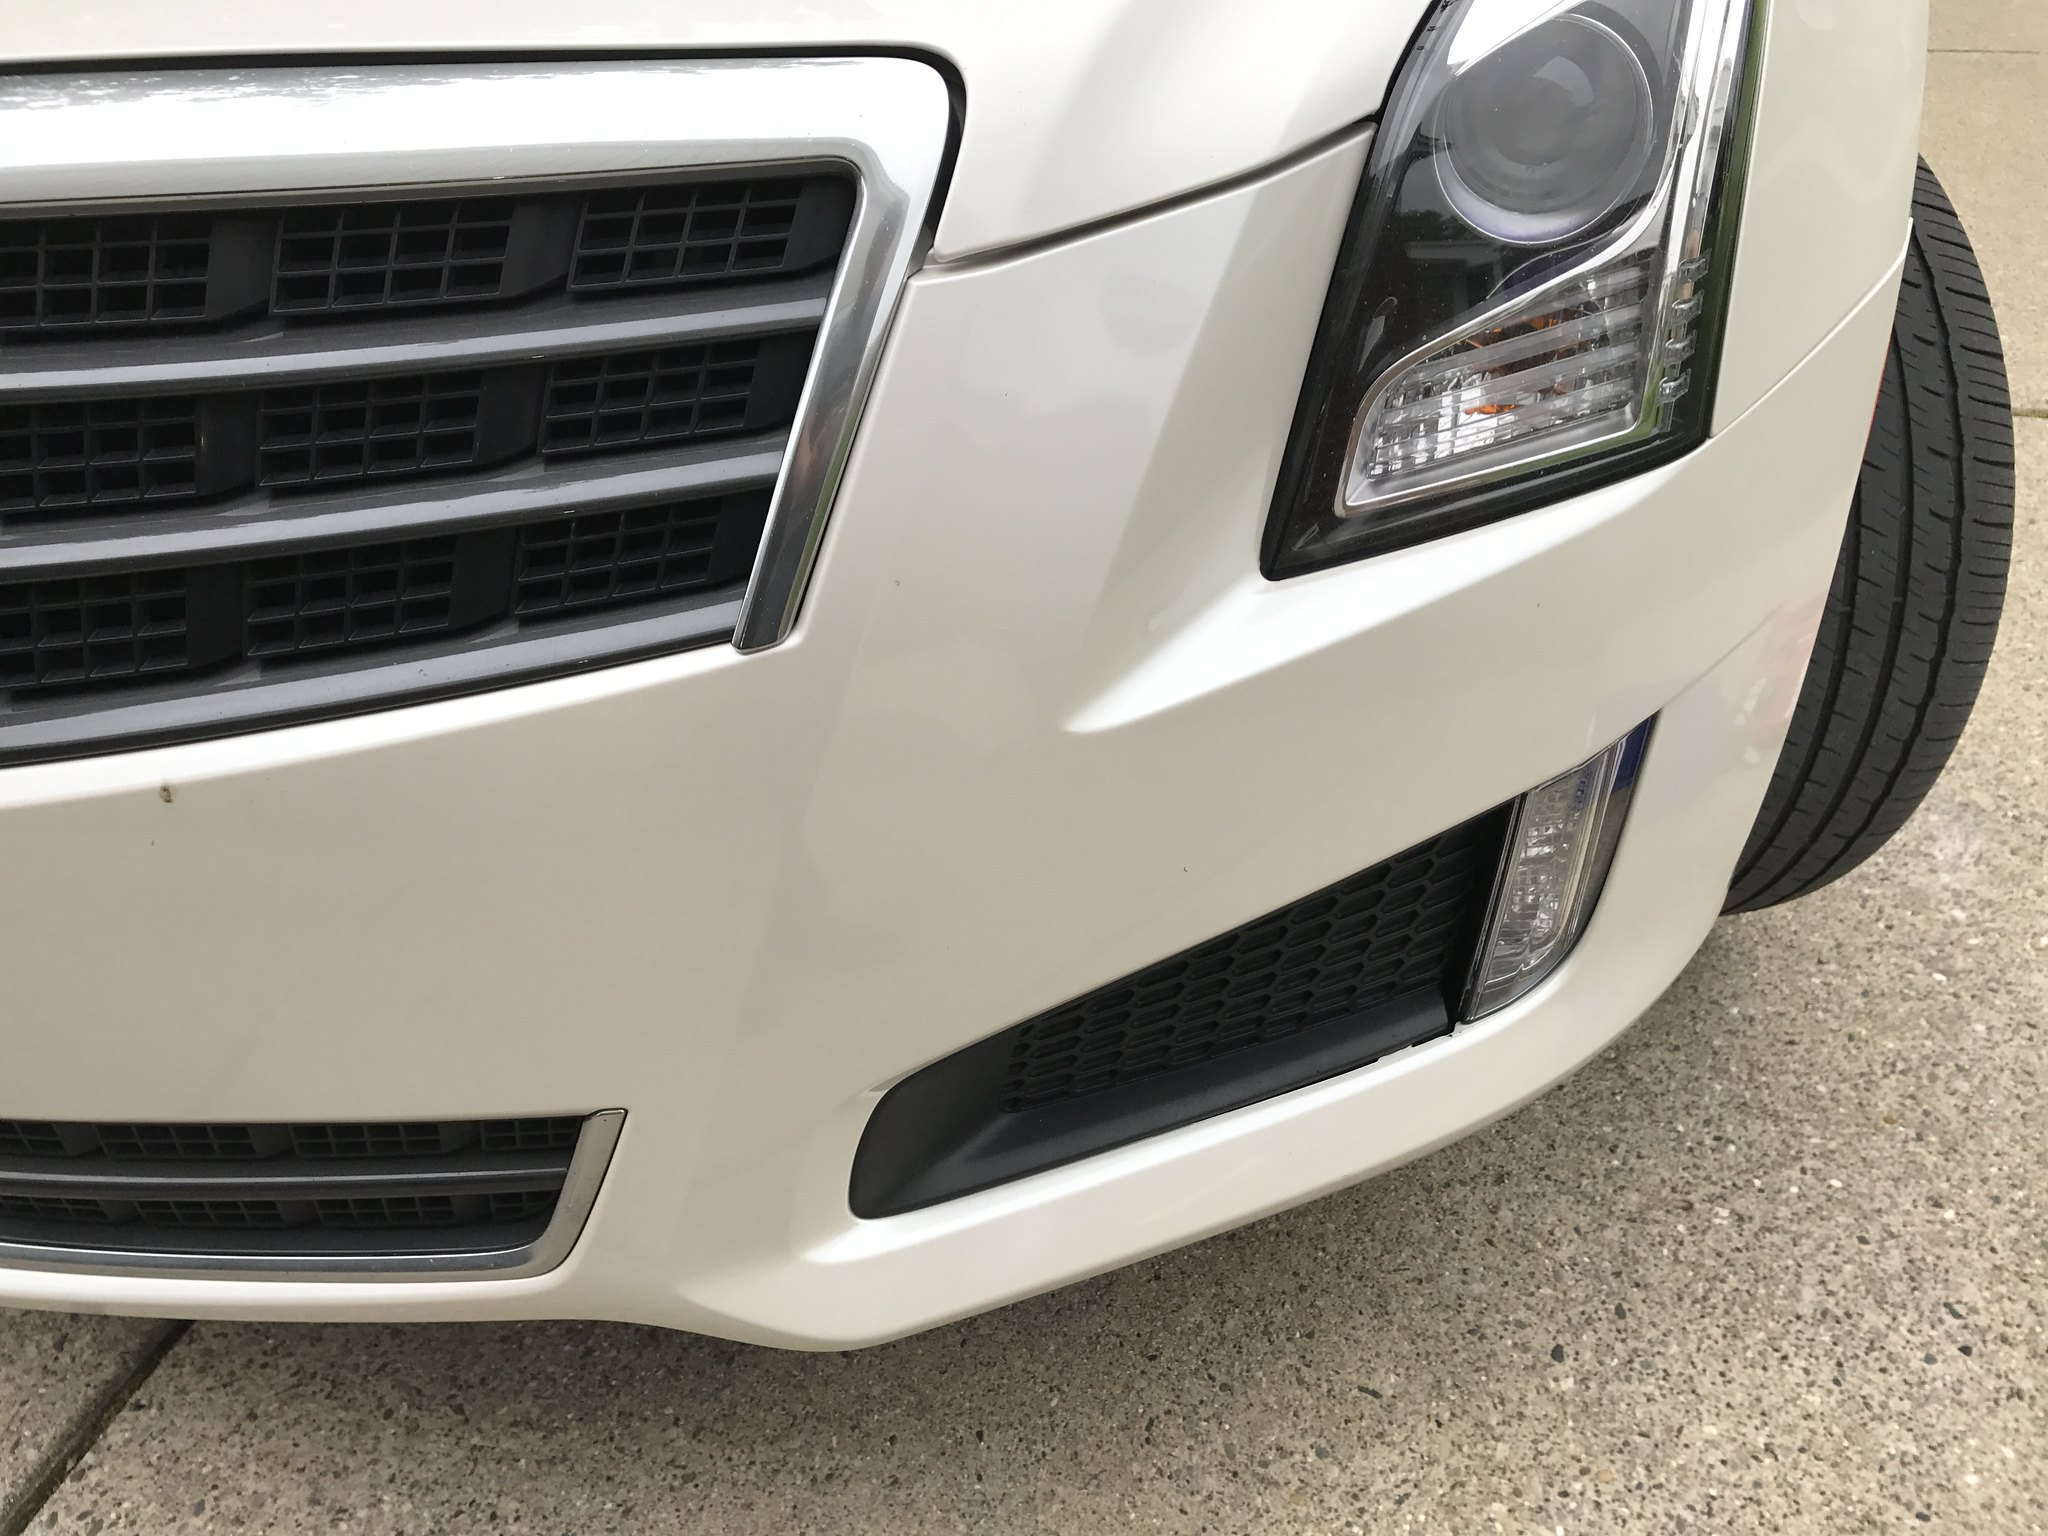 36165881286_ec3322e02d_k finally intalled the oem drl and hid on a luxury ats [archive  at webbmarketing.co